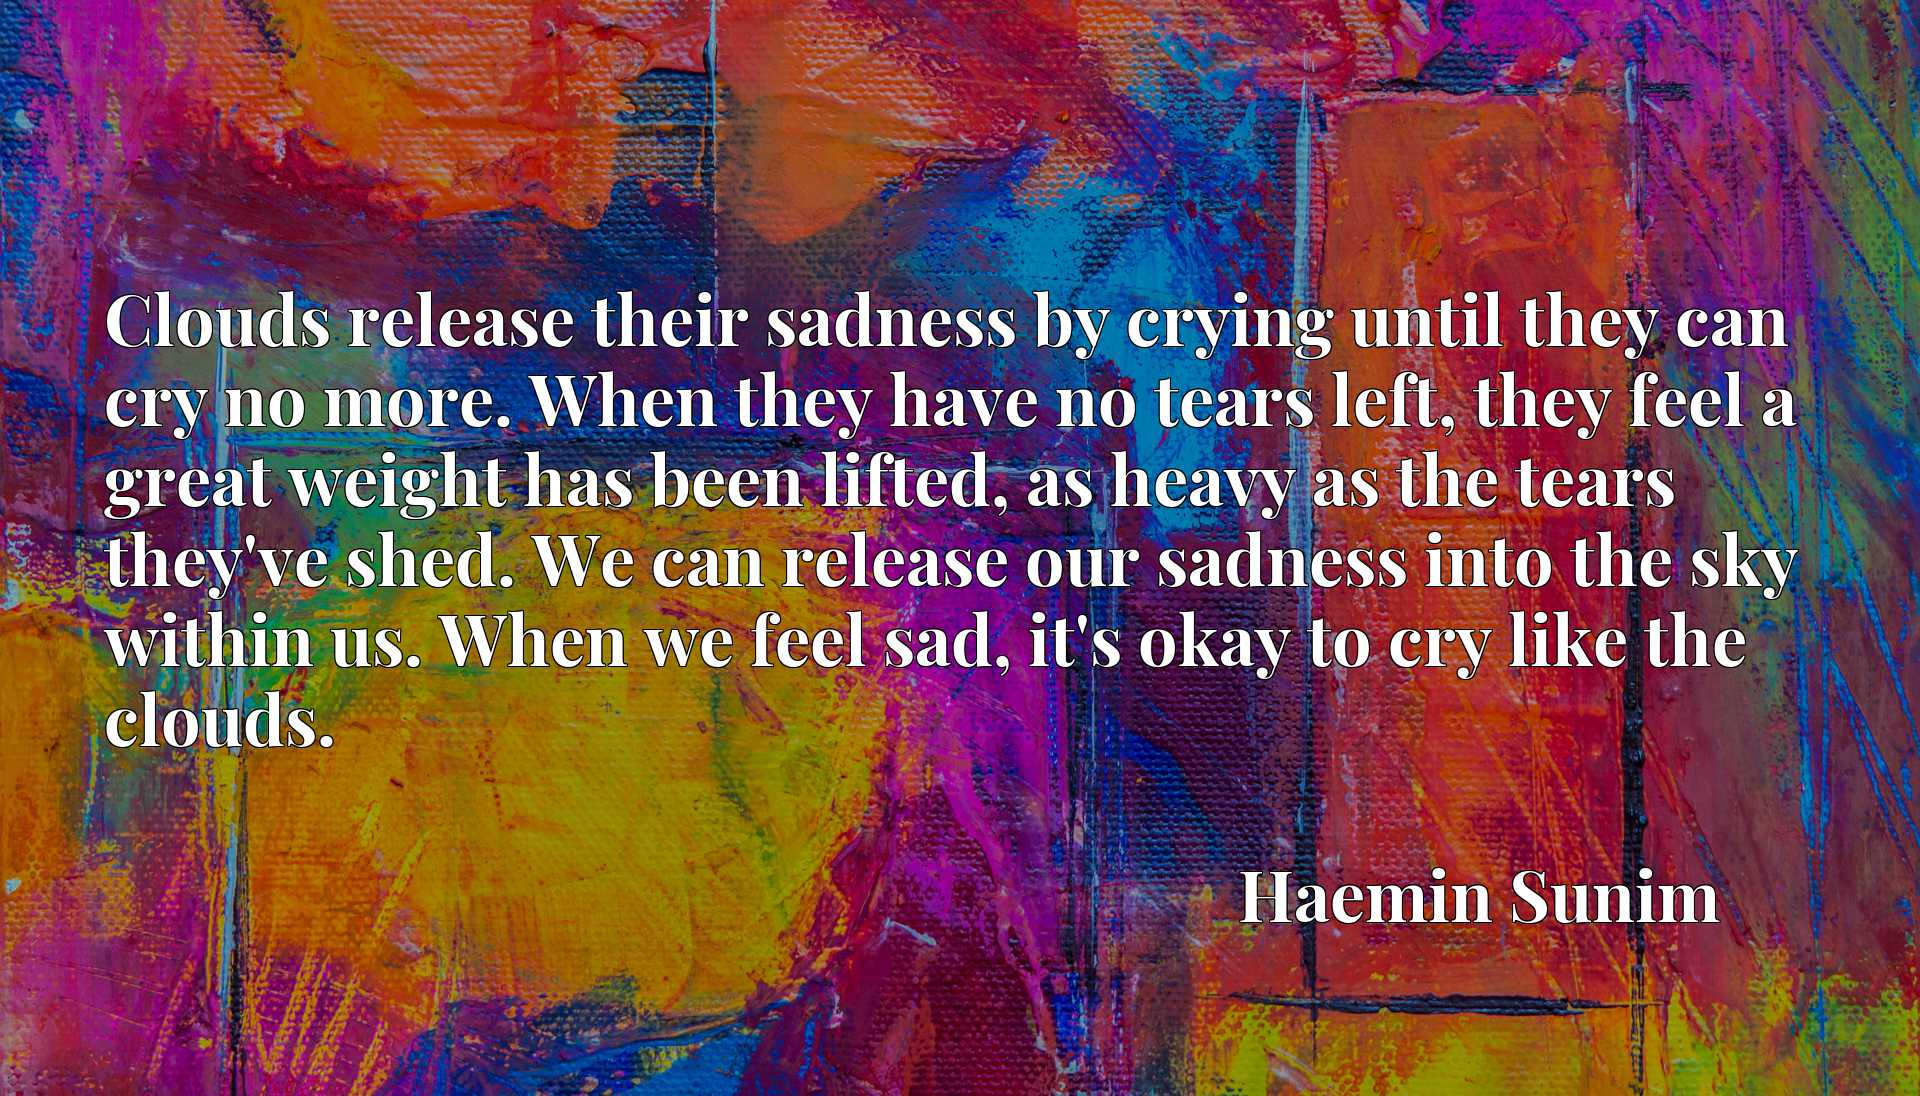 Clouds release their sadness by crying until they can cry no more. When they have no tears left, they feel a great weight has been lifted, as heavy as the tears they've shed. We can release our sadness into the sky within us. When we feel sad, it's okay to cry like the clouds.